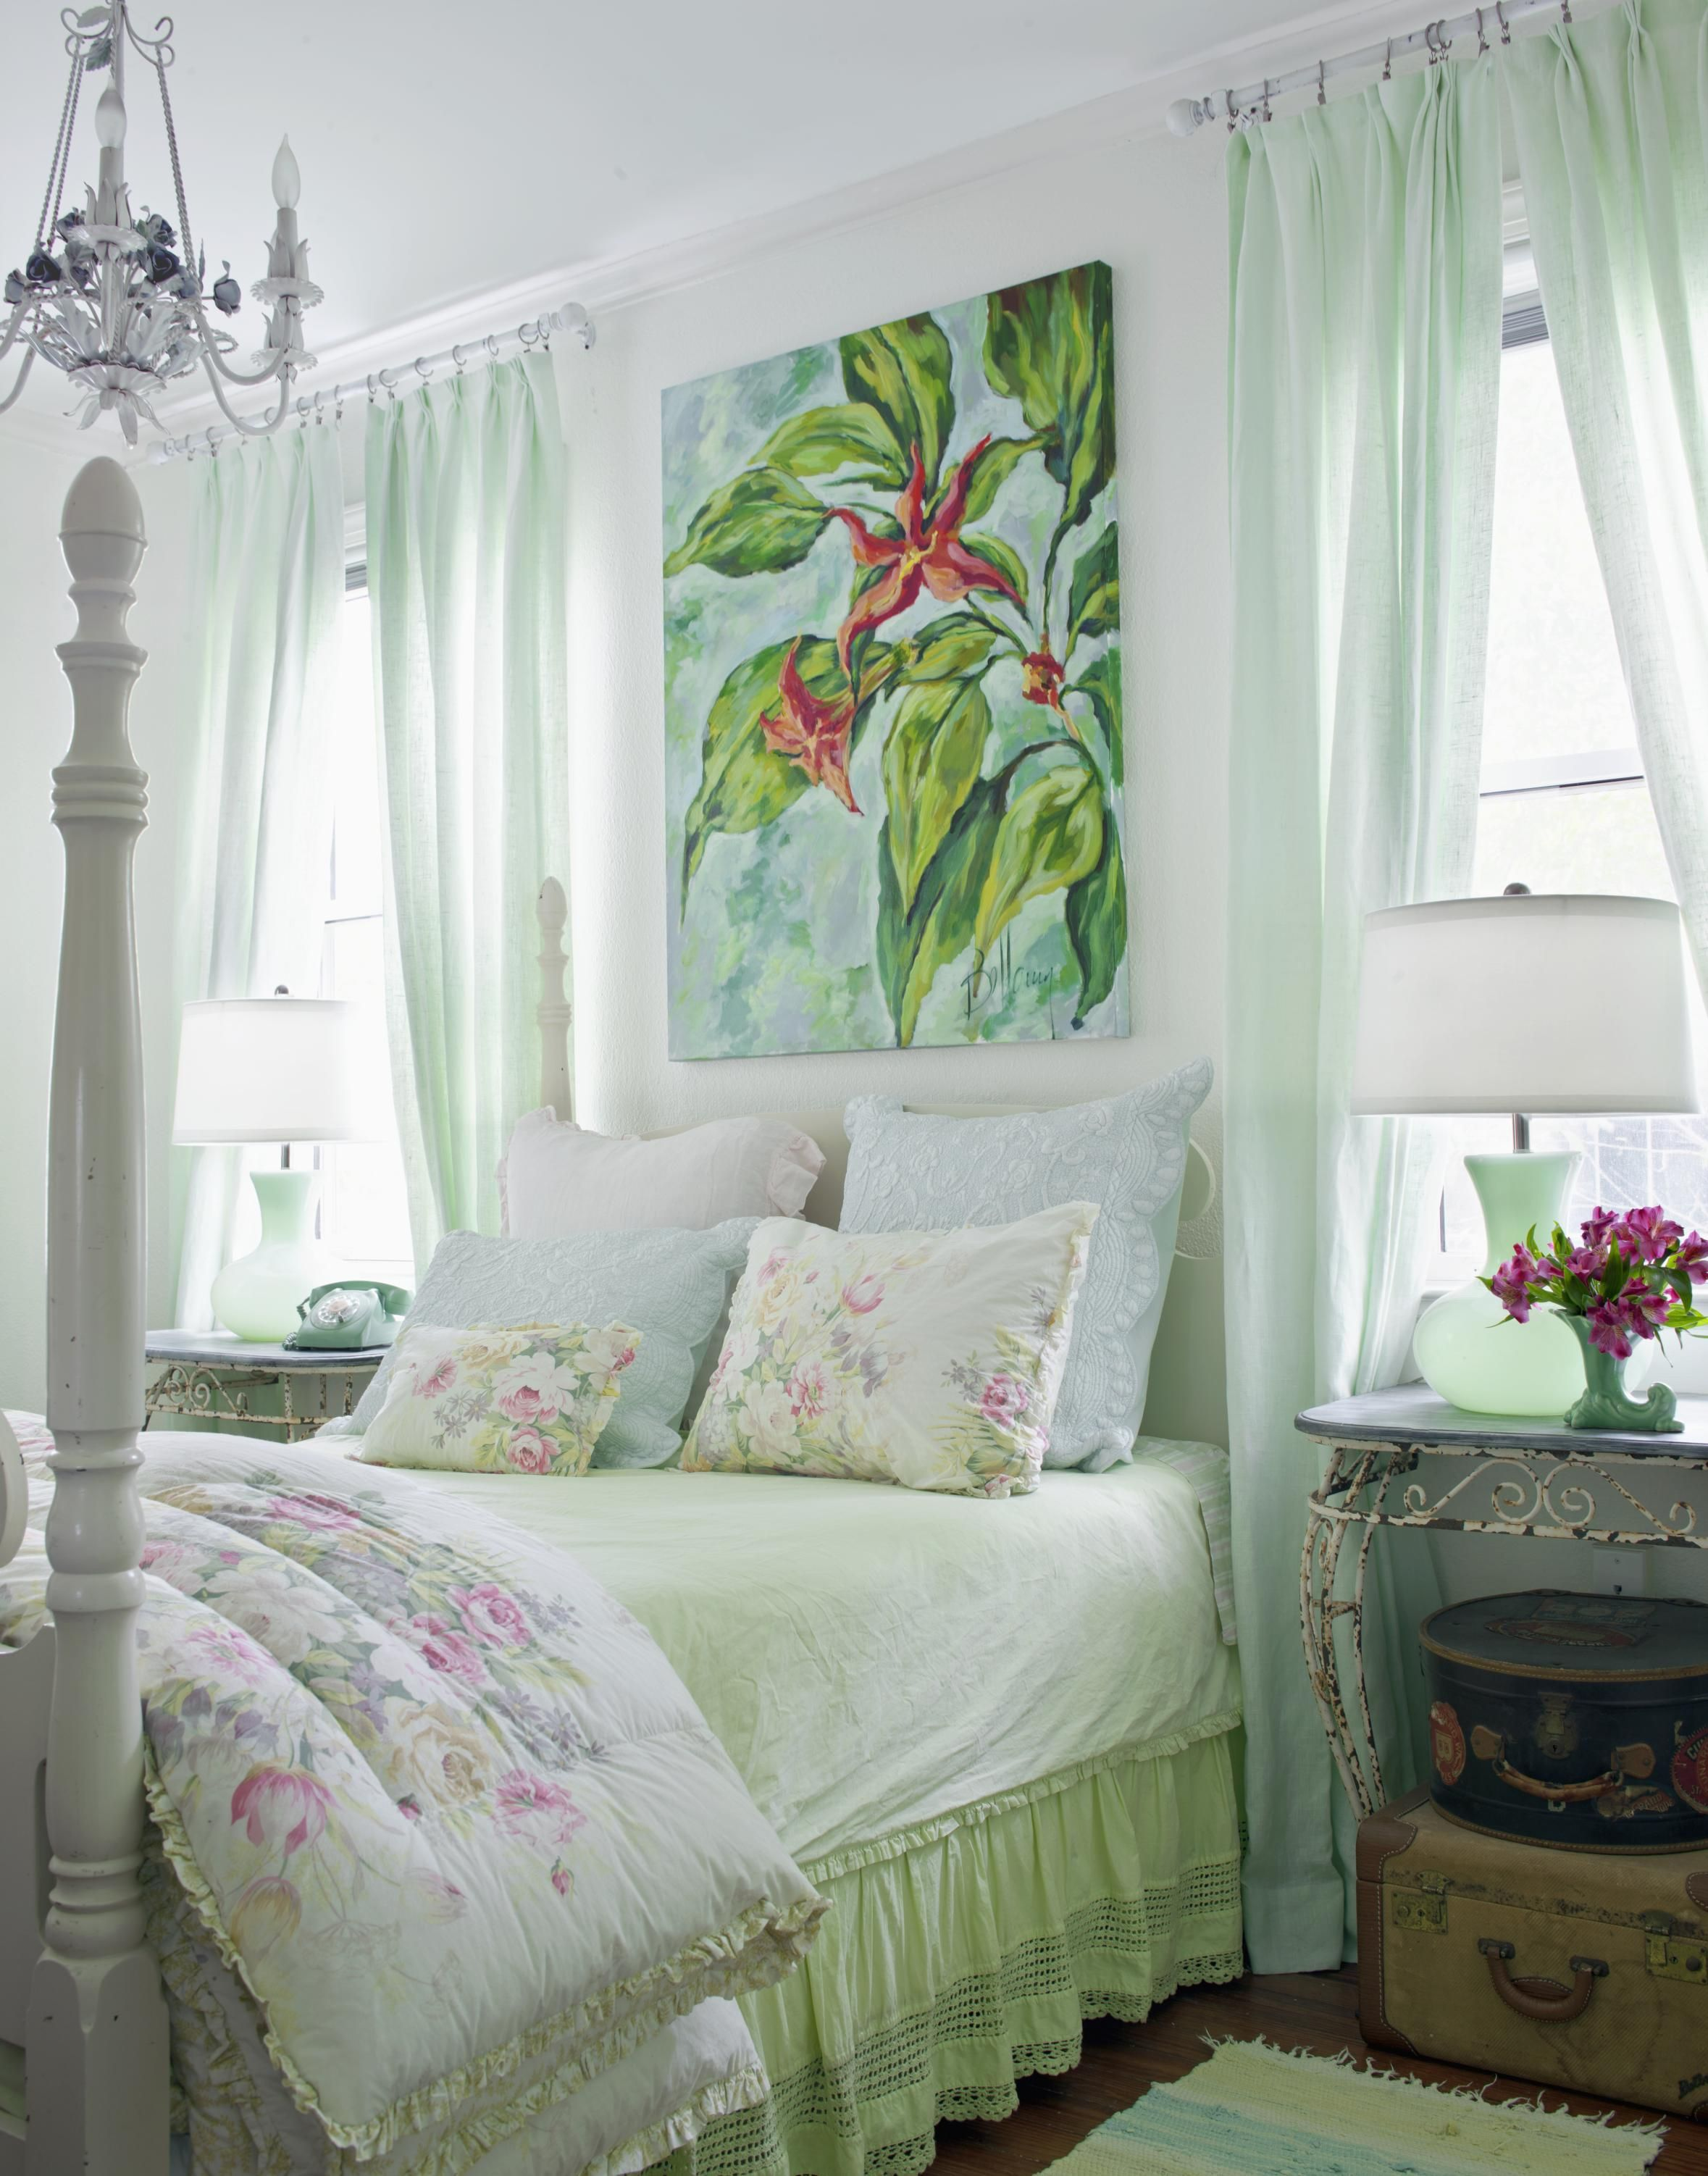 Rustic Romantic Bedroom Ideas: Bedrooms: Rustic & Romantic (With Images)